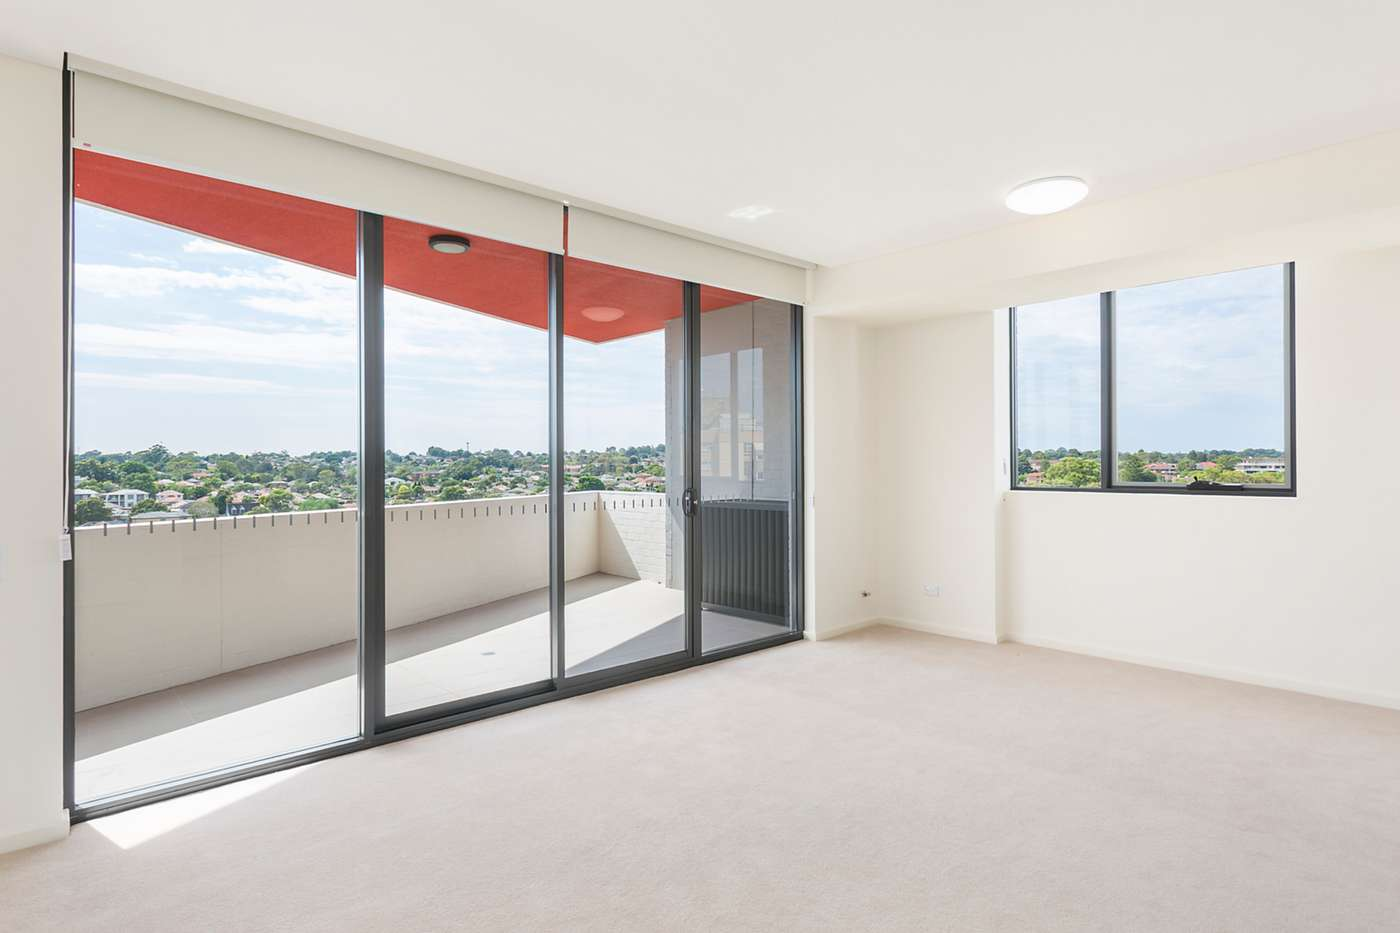 Main view of Homely apartment listing, 908/11A Washington Avenue, Riverwood, NSW 2210